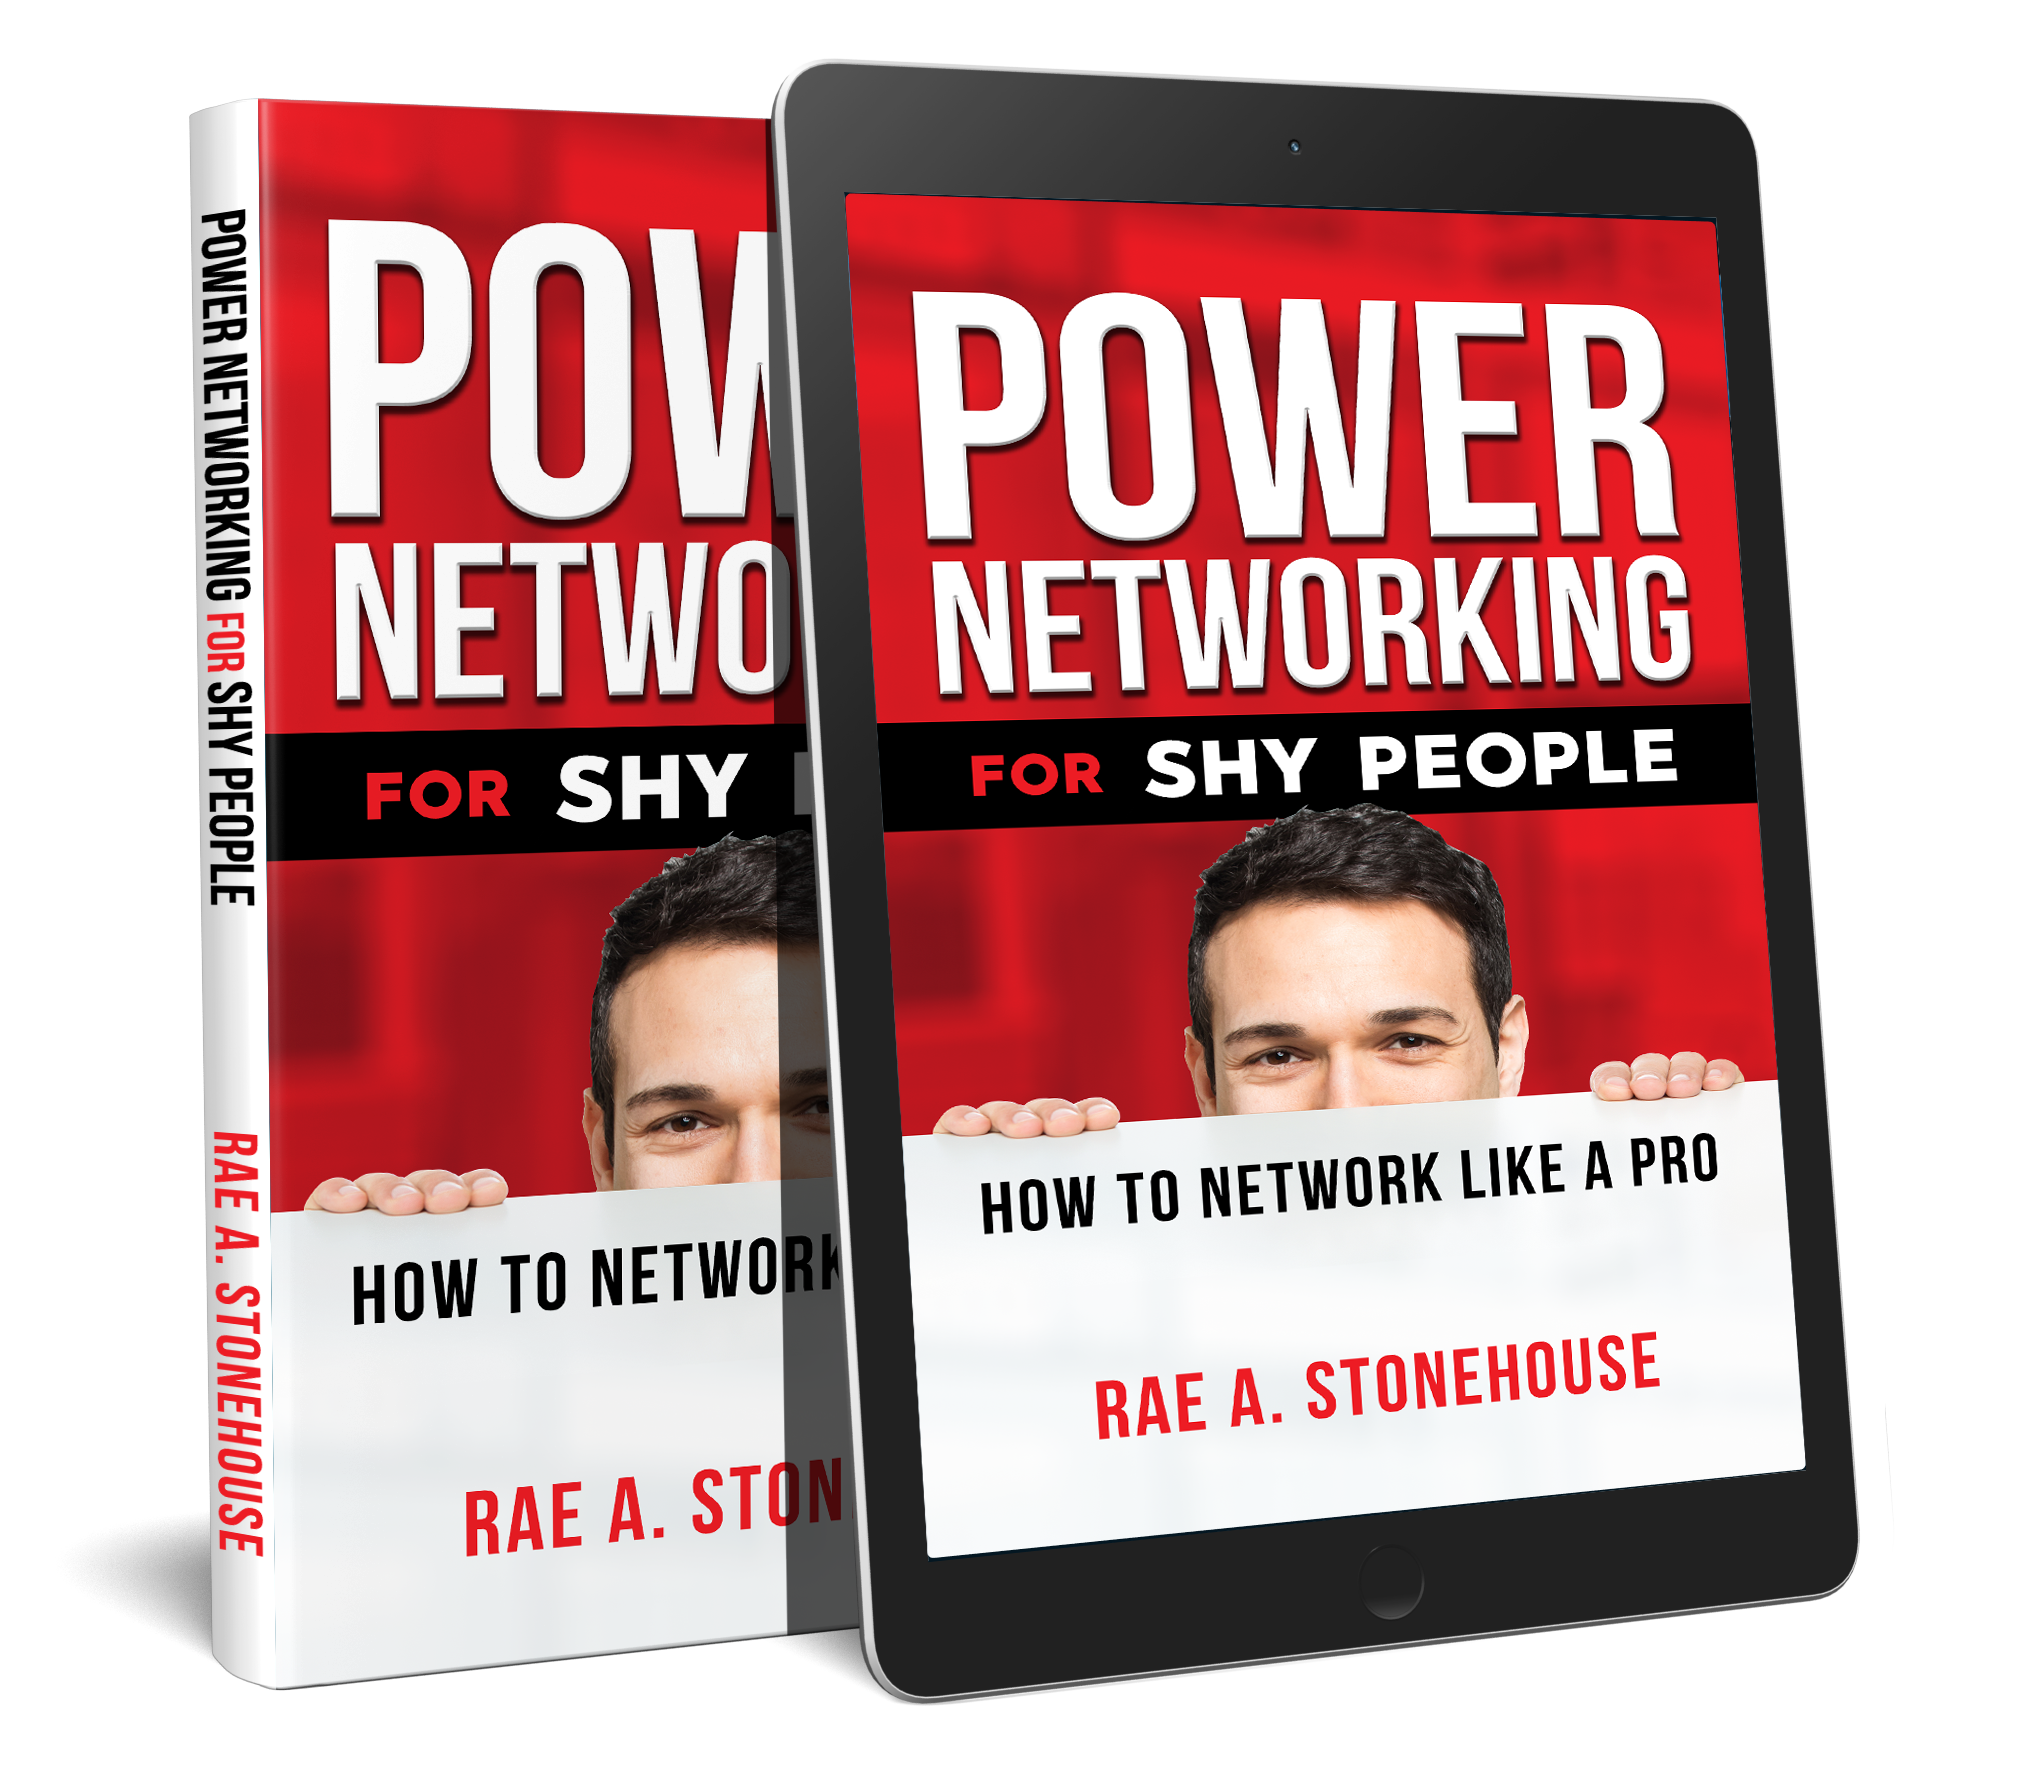 Power Networking For Shy People: How To Network Like A Pro by Rae A. Stonehouse